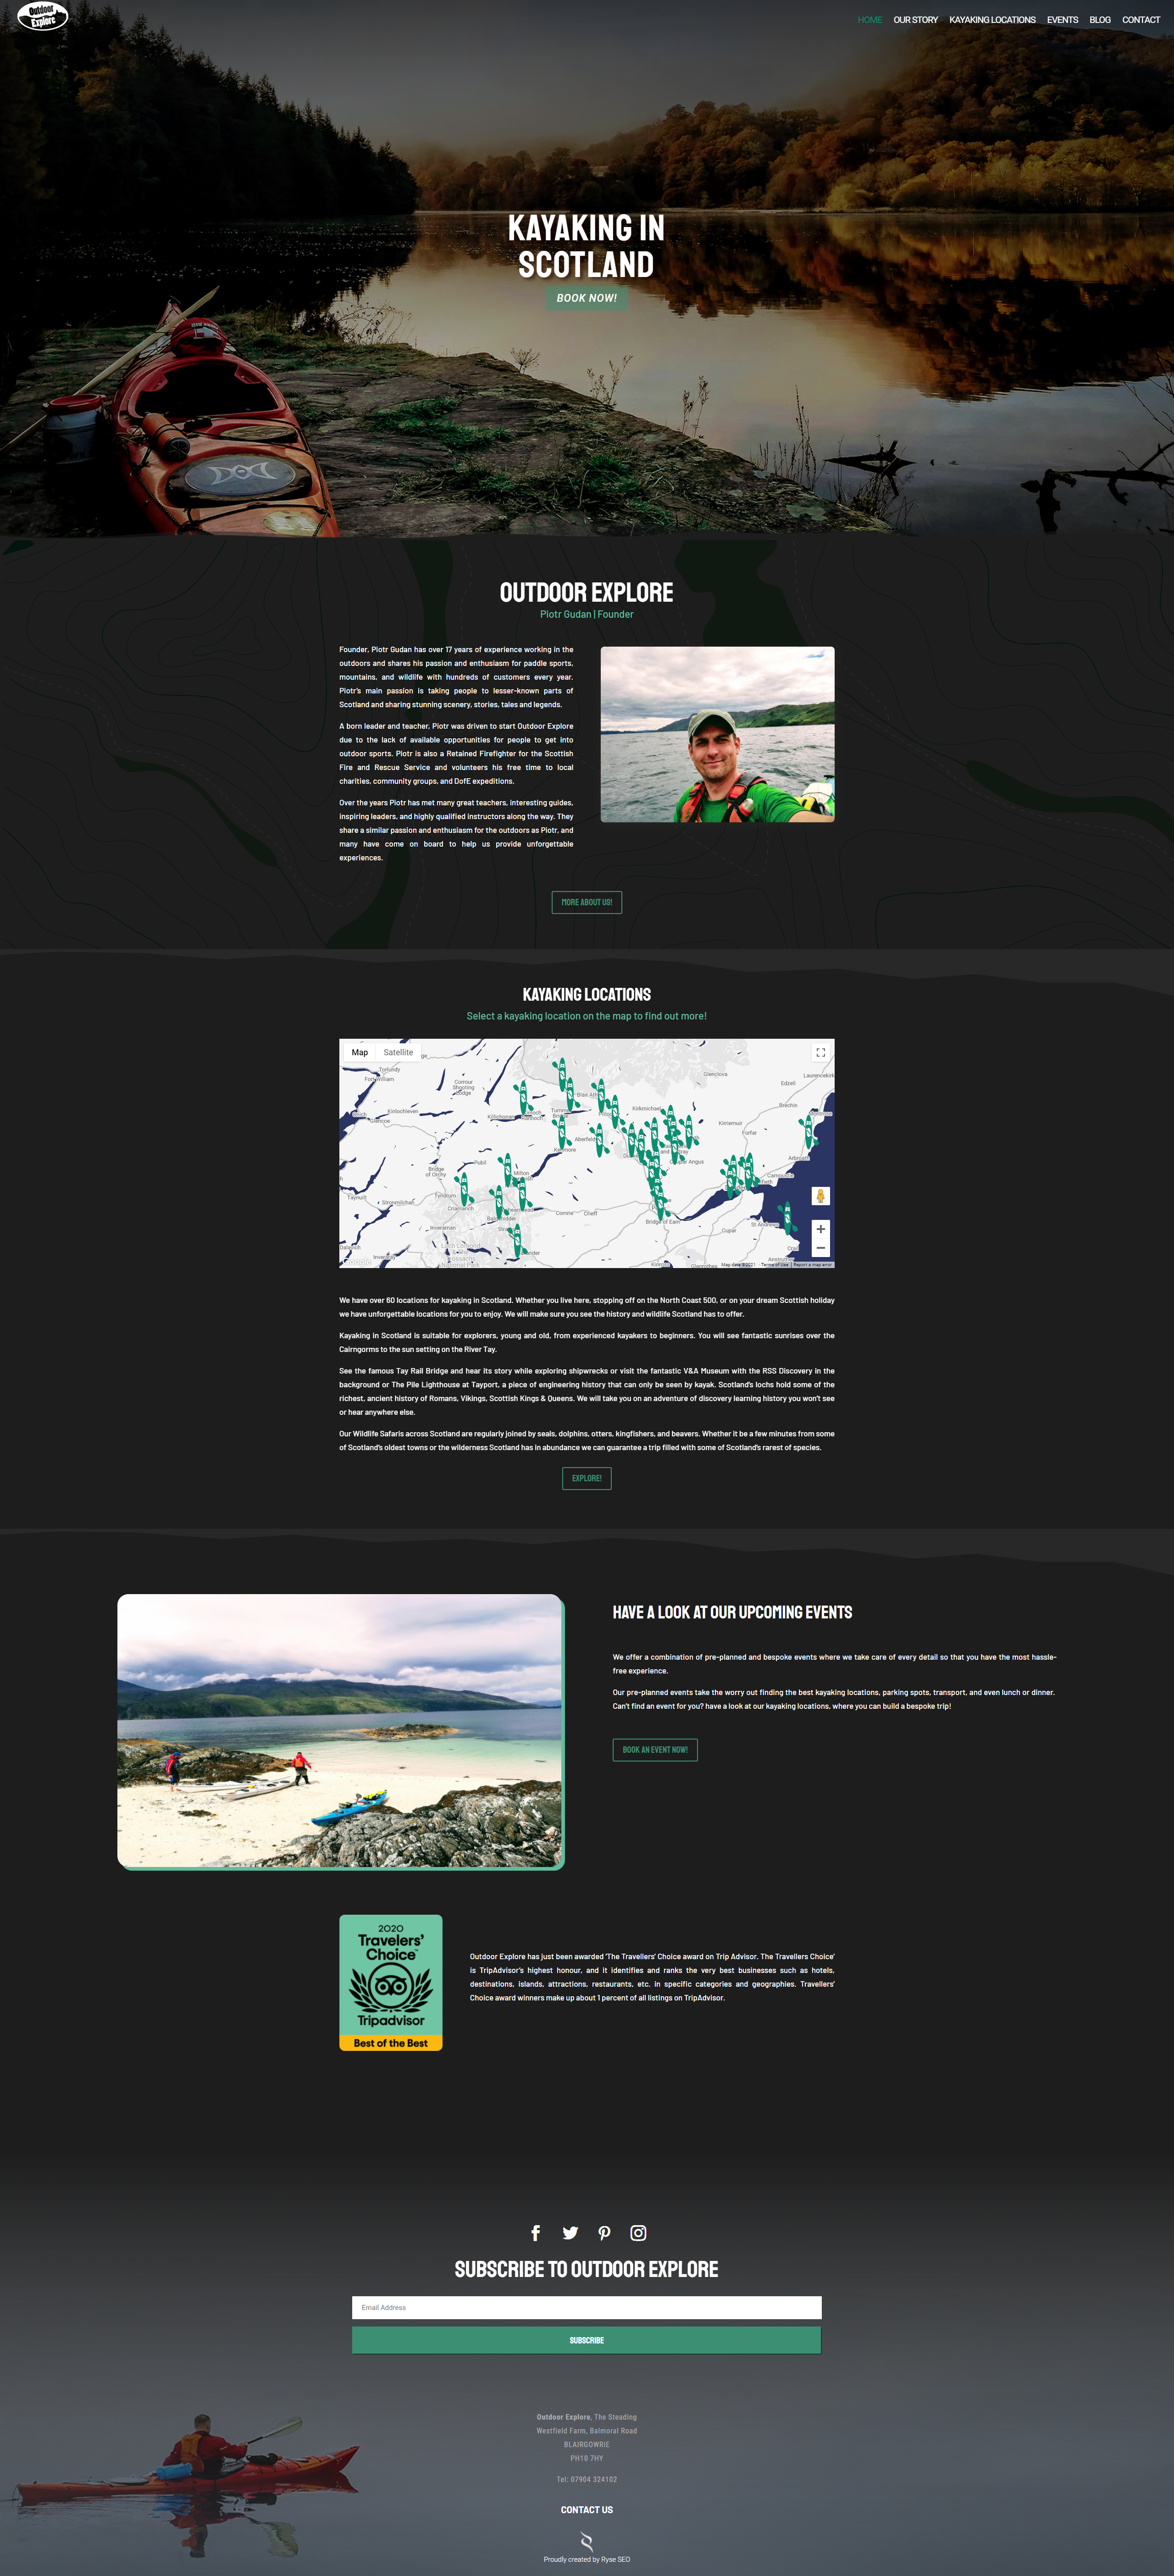 Outdoor Explore full page image